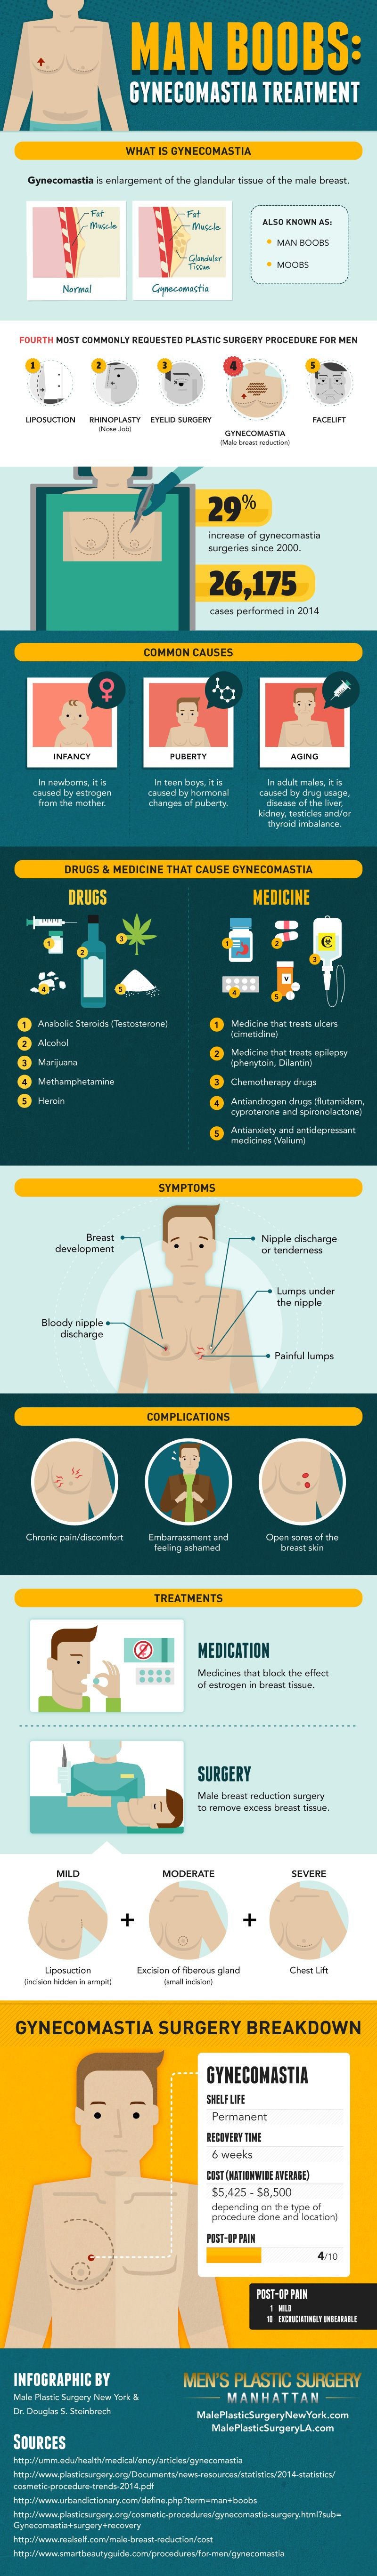 Man Boobs: Gynecomastia Treatments